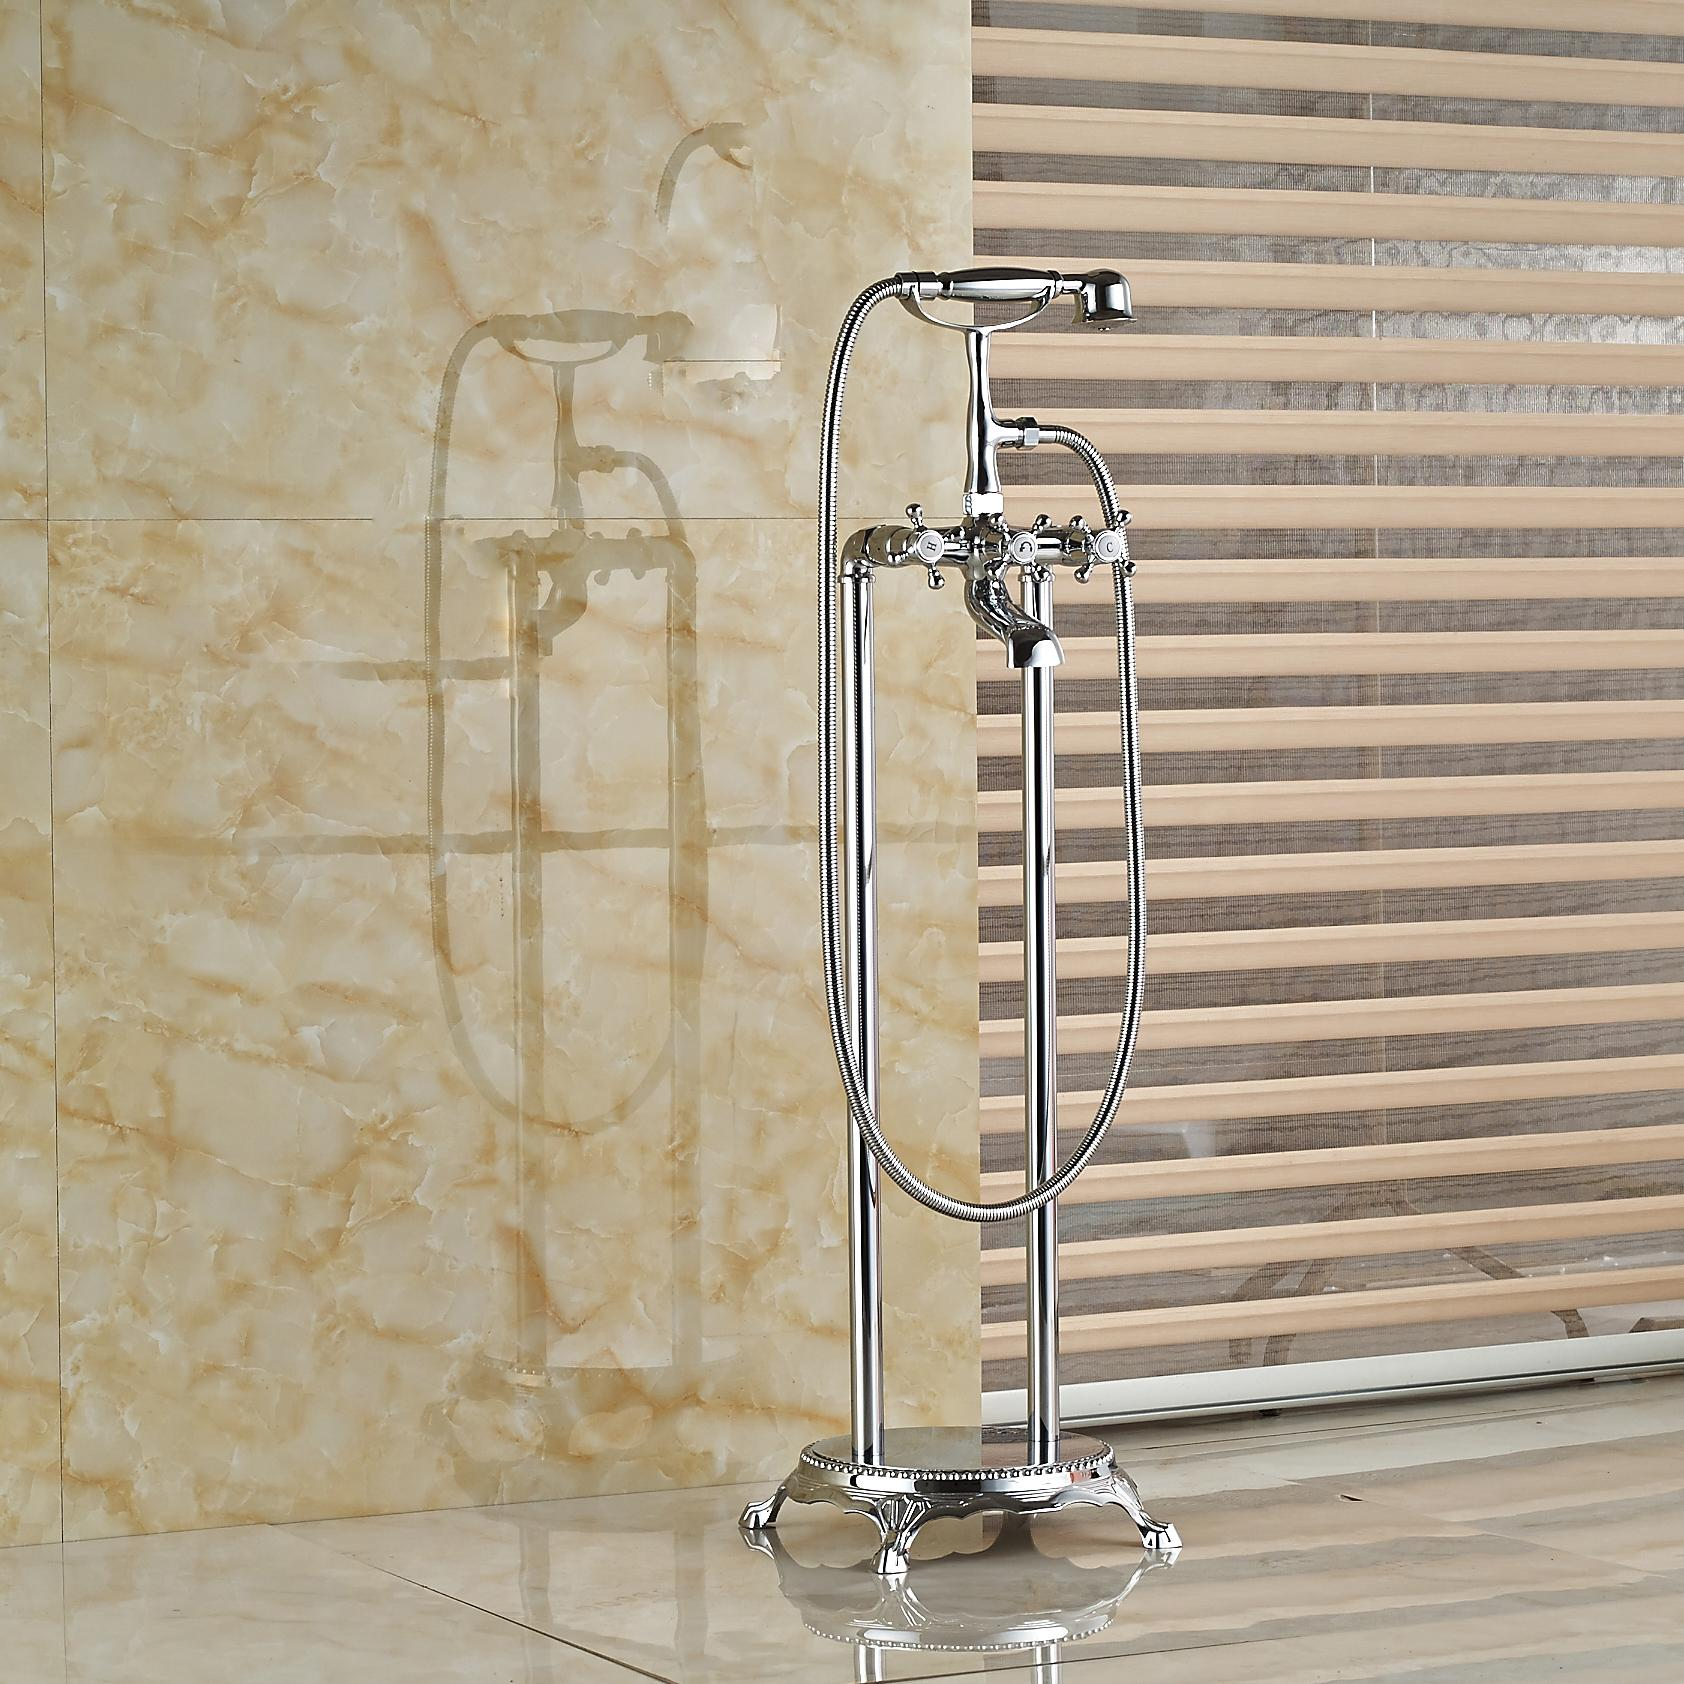 2019 Wholesale And Retail Polished Chrome Brass Bathroom Tub Faucet W Hand Shower Mixer Tap Clawfoot Free Standing Dual Legs Mixer From Gonglangno1